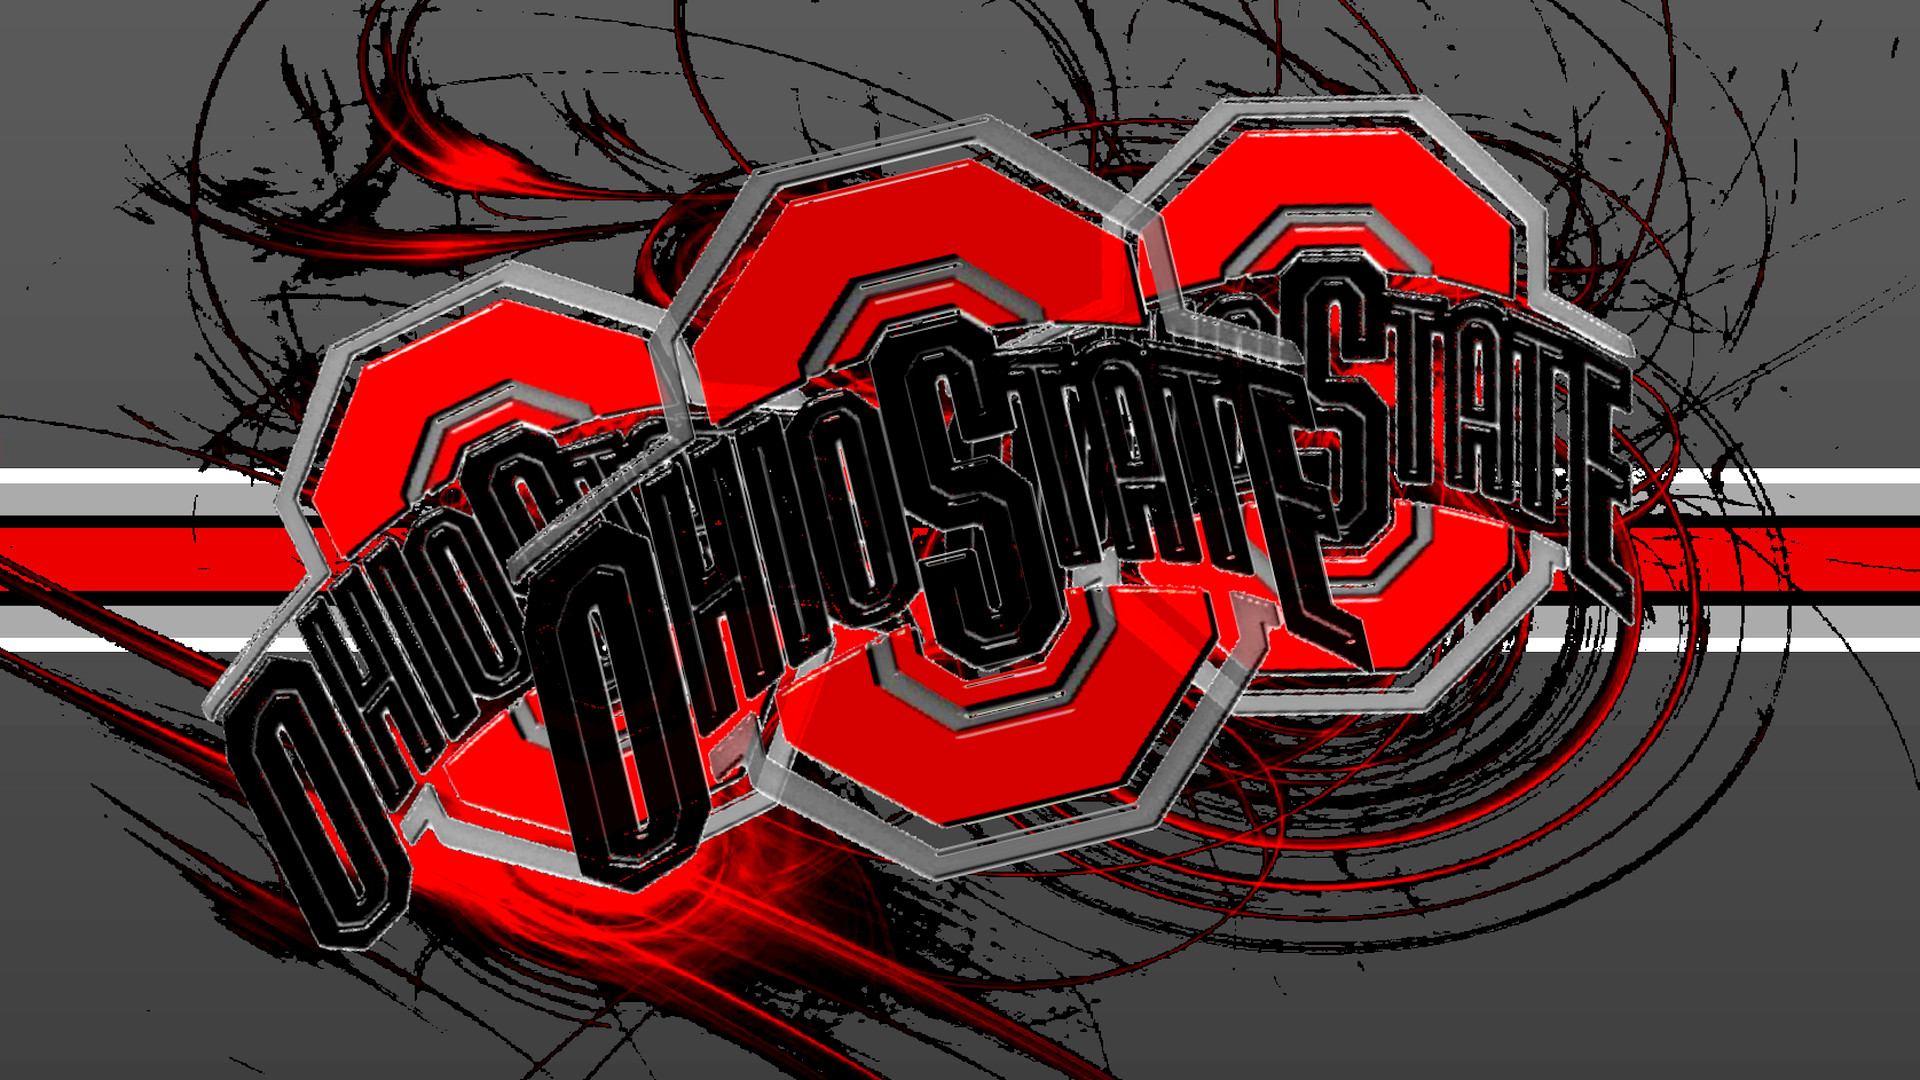 2824x2012 Ohio State Buckeyes College Football 2824A 2012 Desktop Wallpapers Hd 4k Windows 10 Mac Apple Backgrounds Download Wallpaper Free